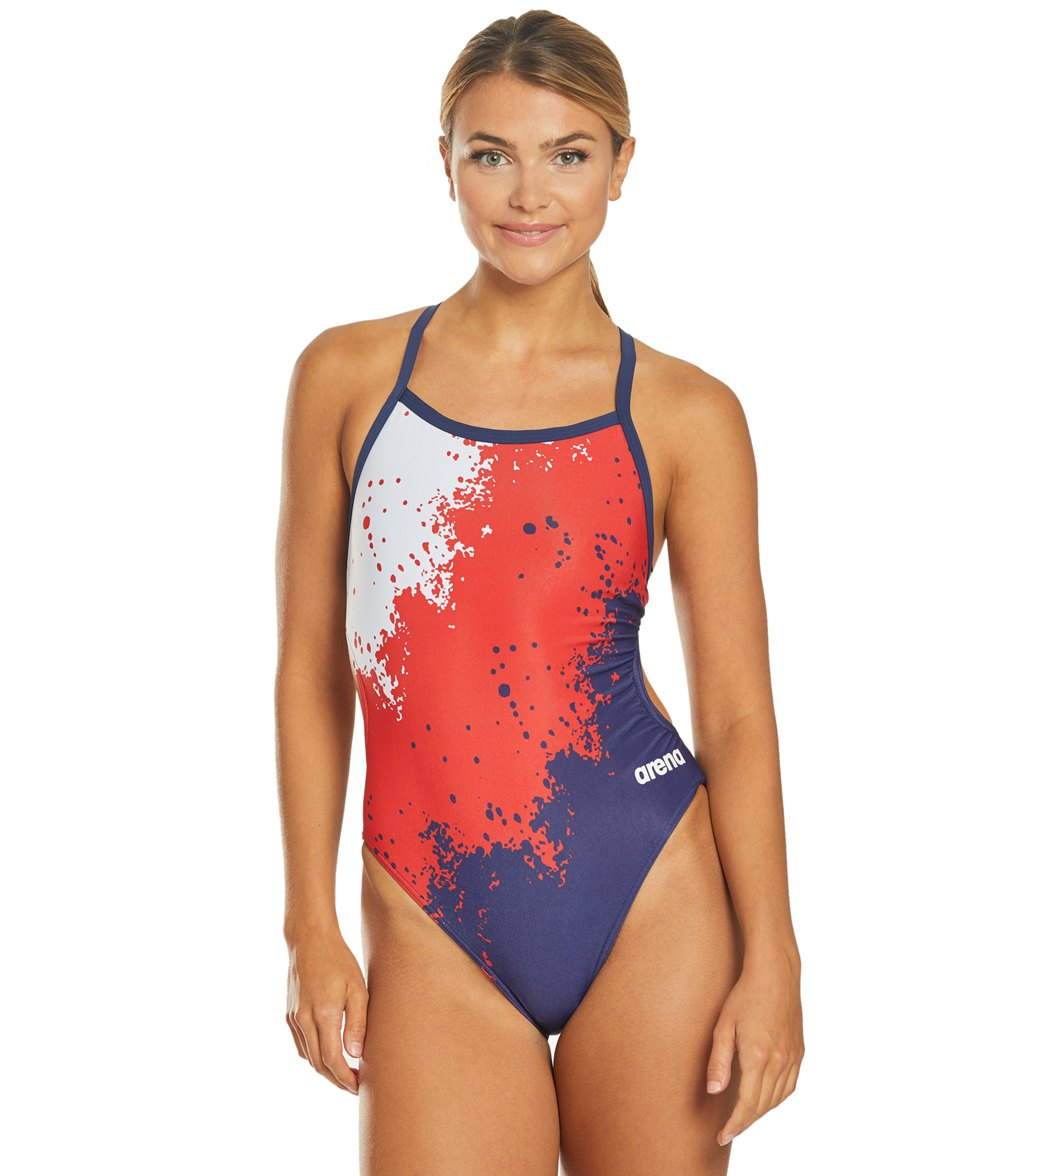 arena Womens Warning One Piece Drop Back Pool Training Swimming Swimsuit Costume